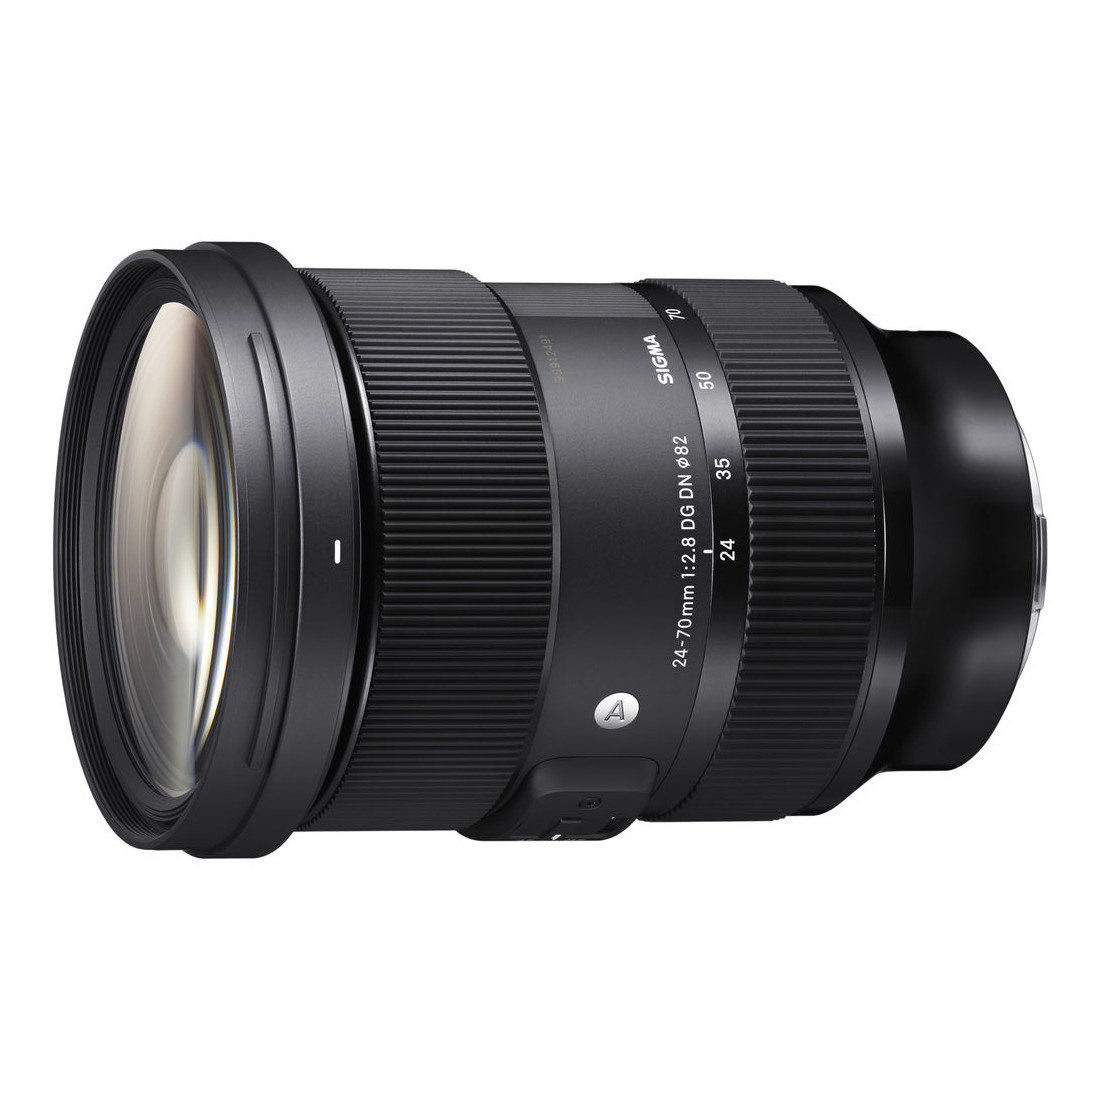 Sigma 24-70mm f/2.8 DG DN Art Sony E-mount